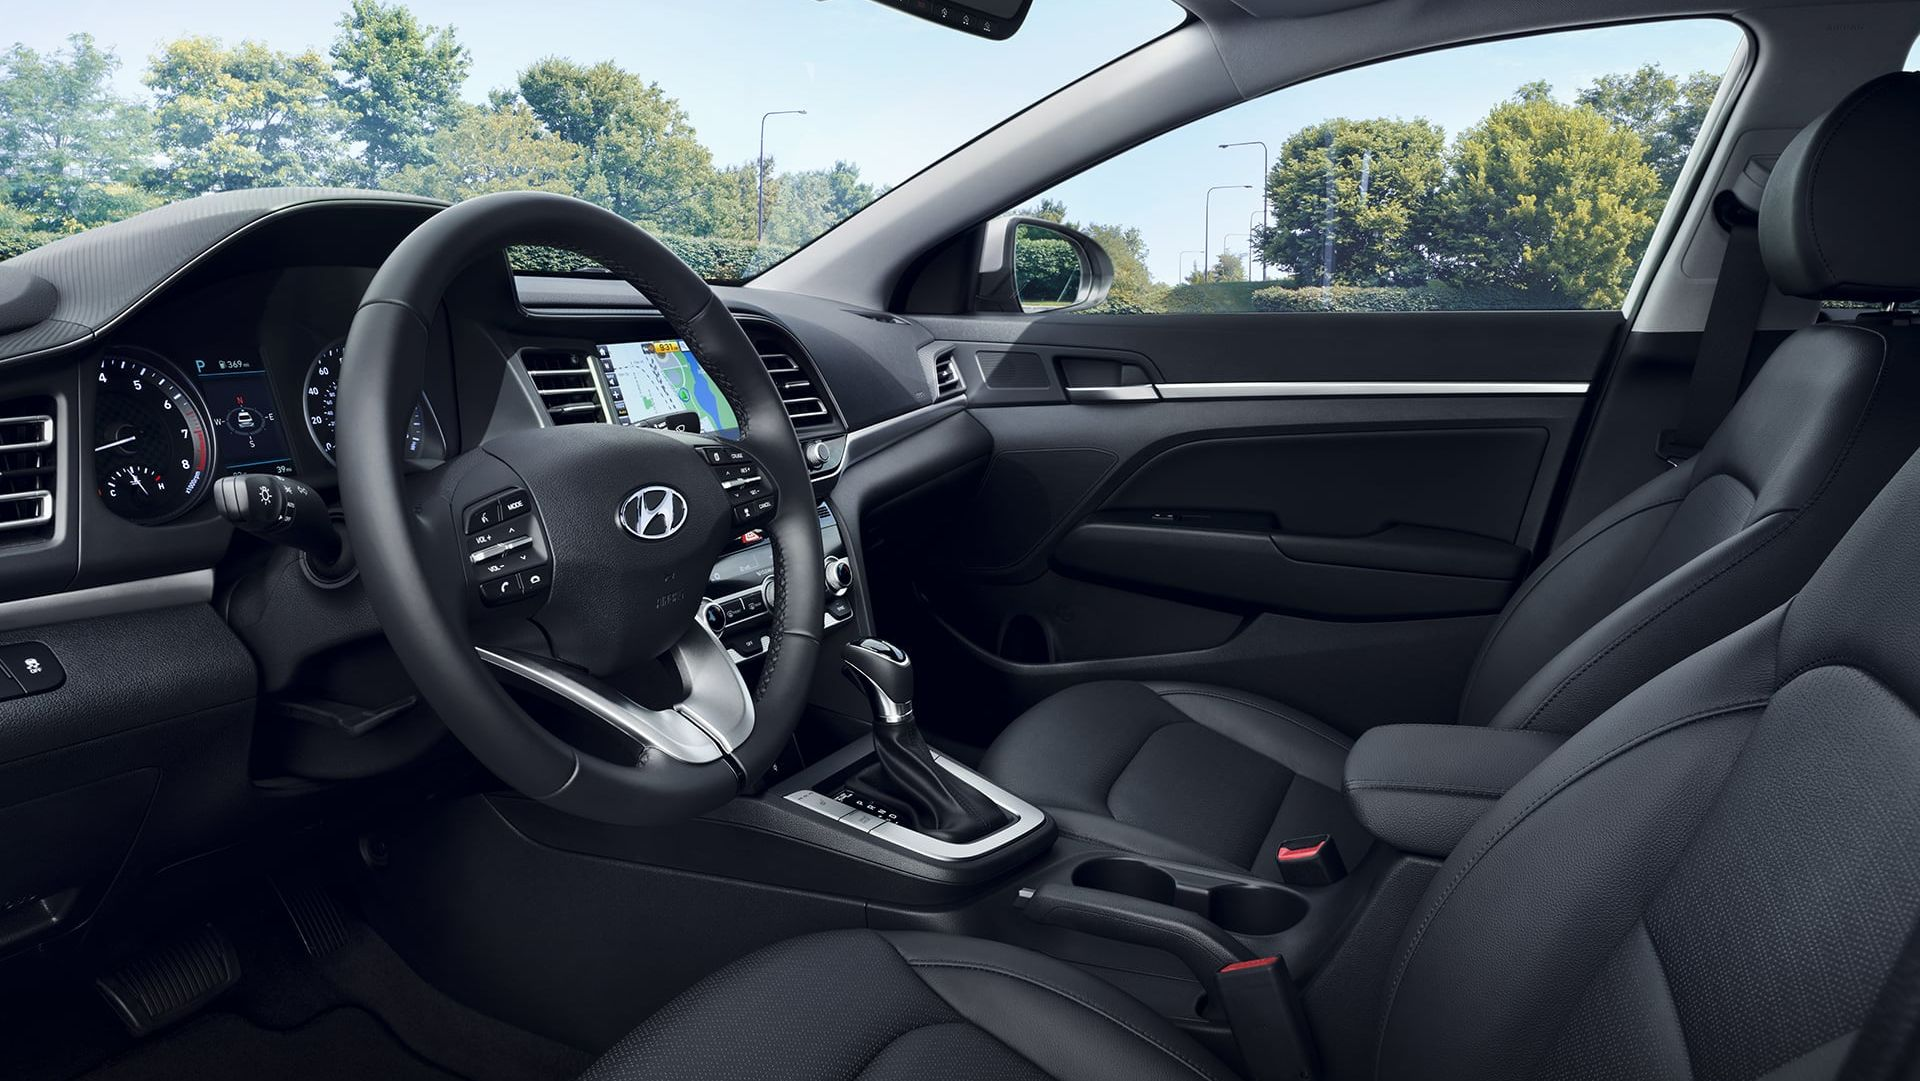 Accommodating Cabin of the 2020 Elantra